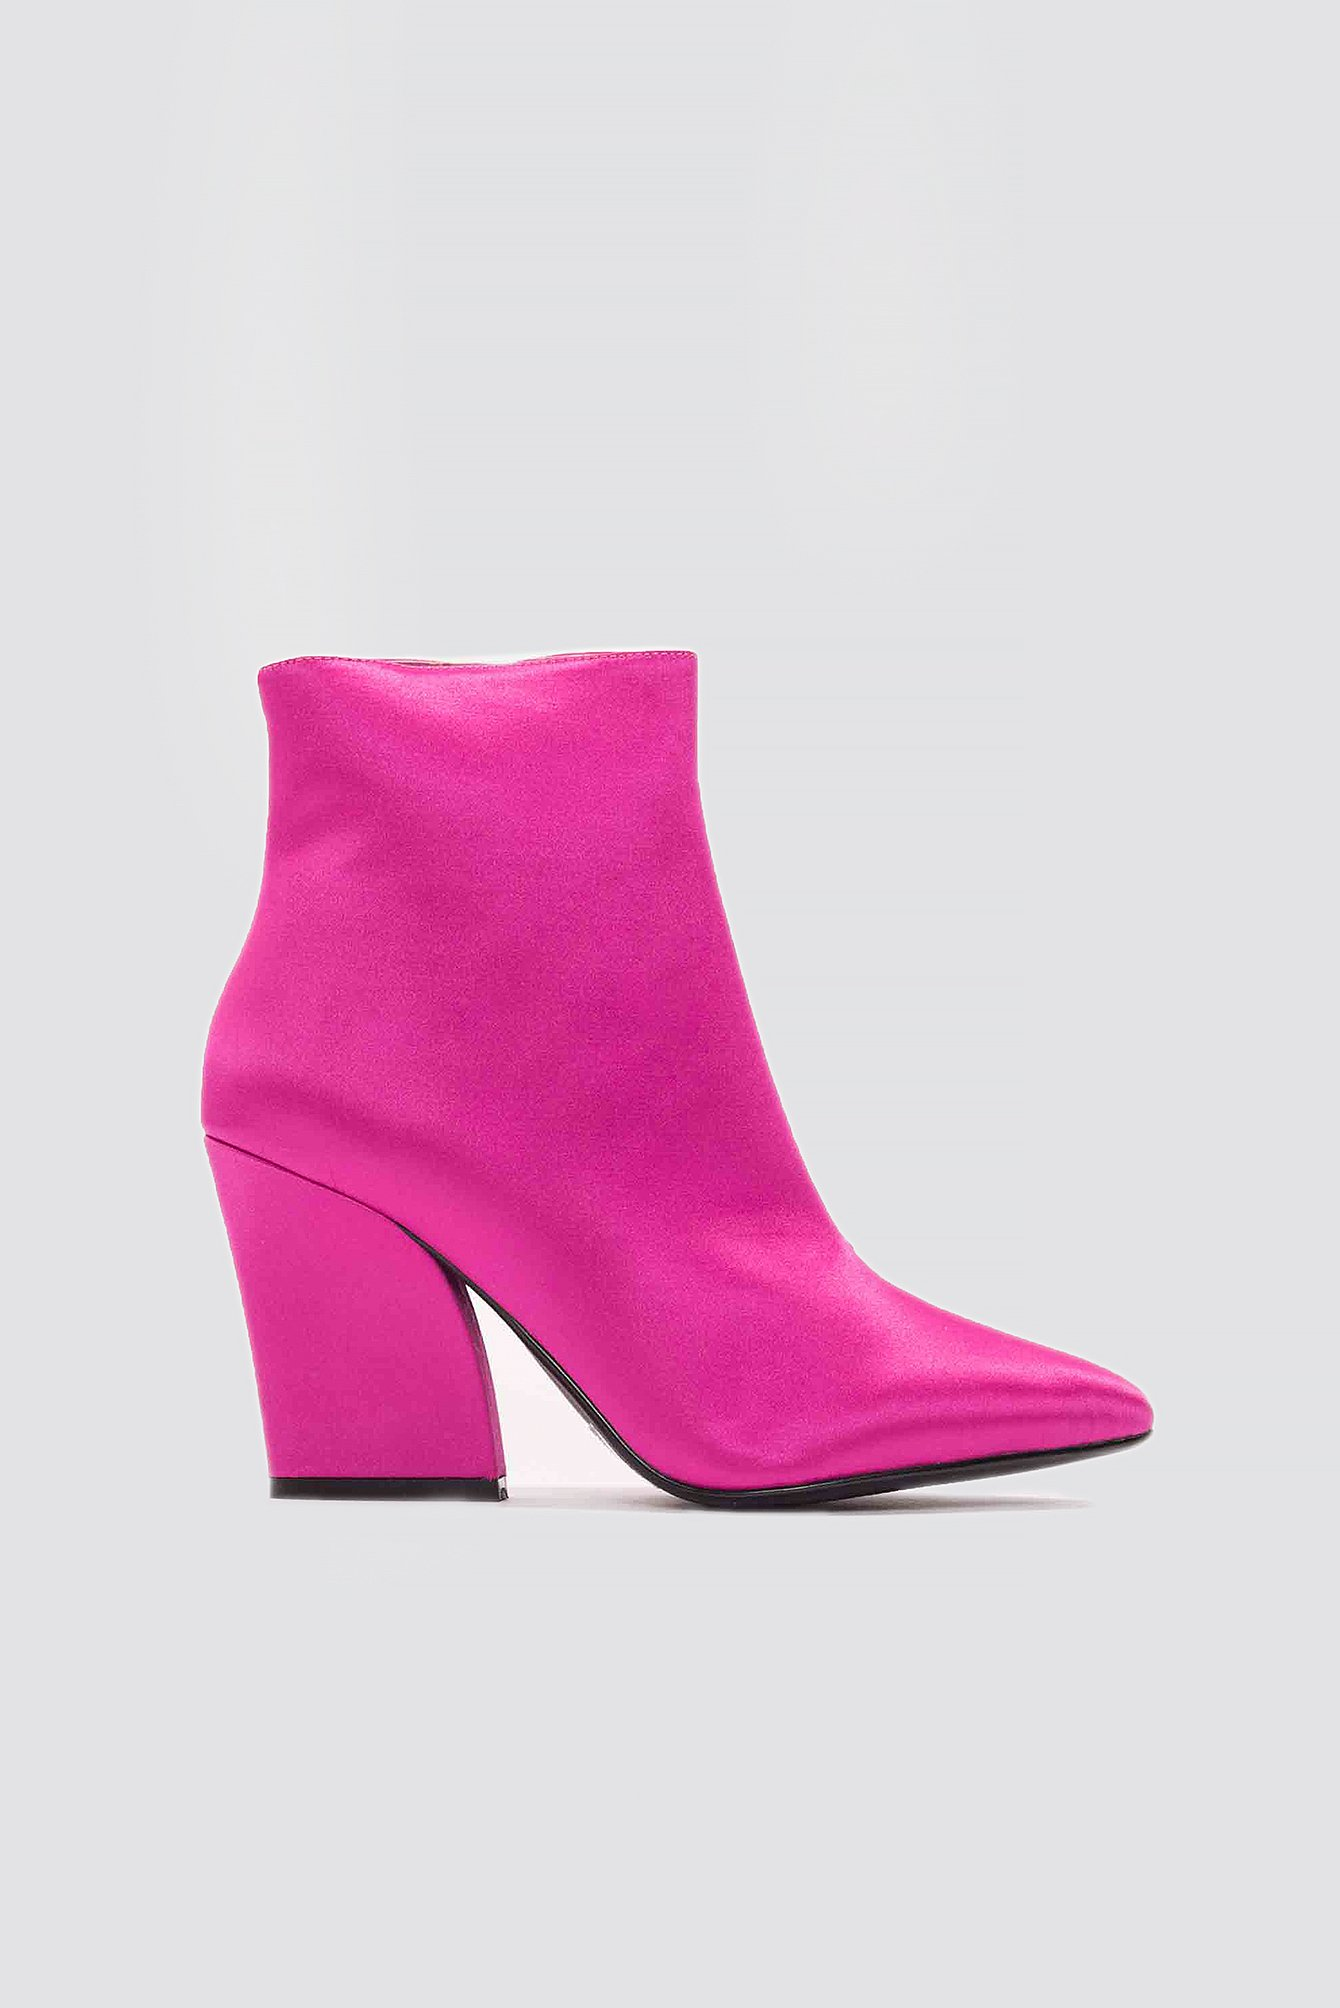 na-kd shoes -  Satin Mid Heel Boots - Pink